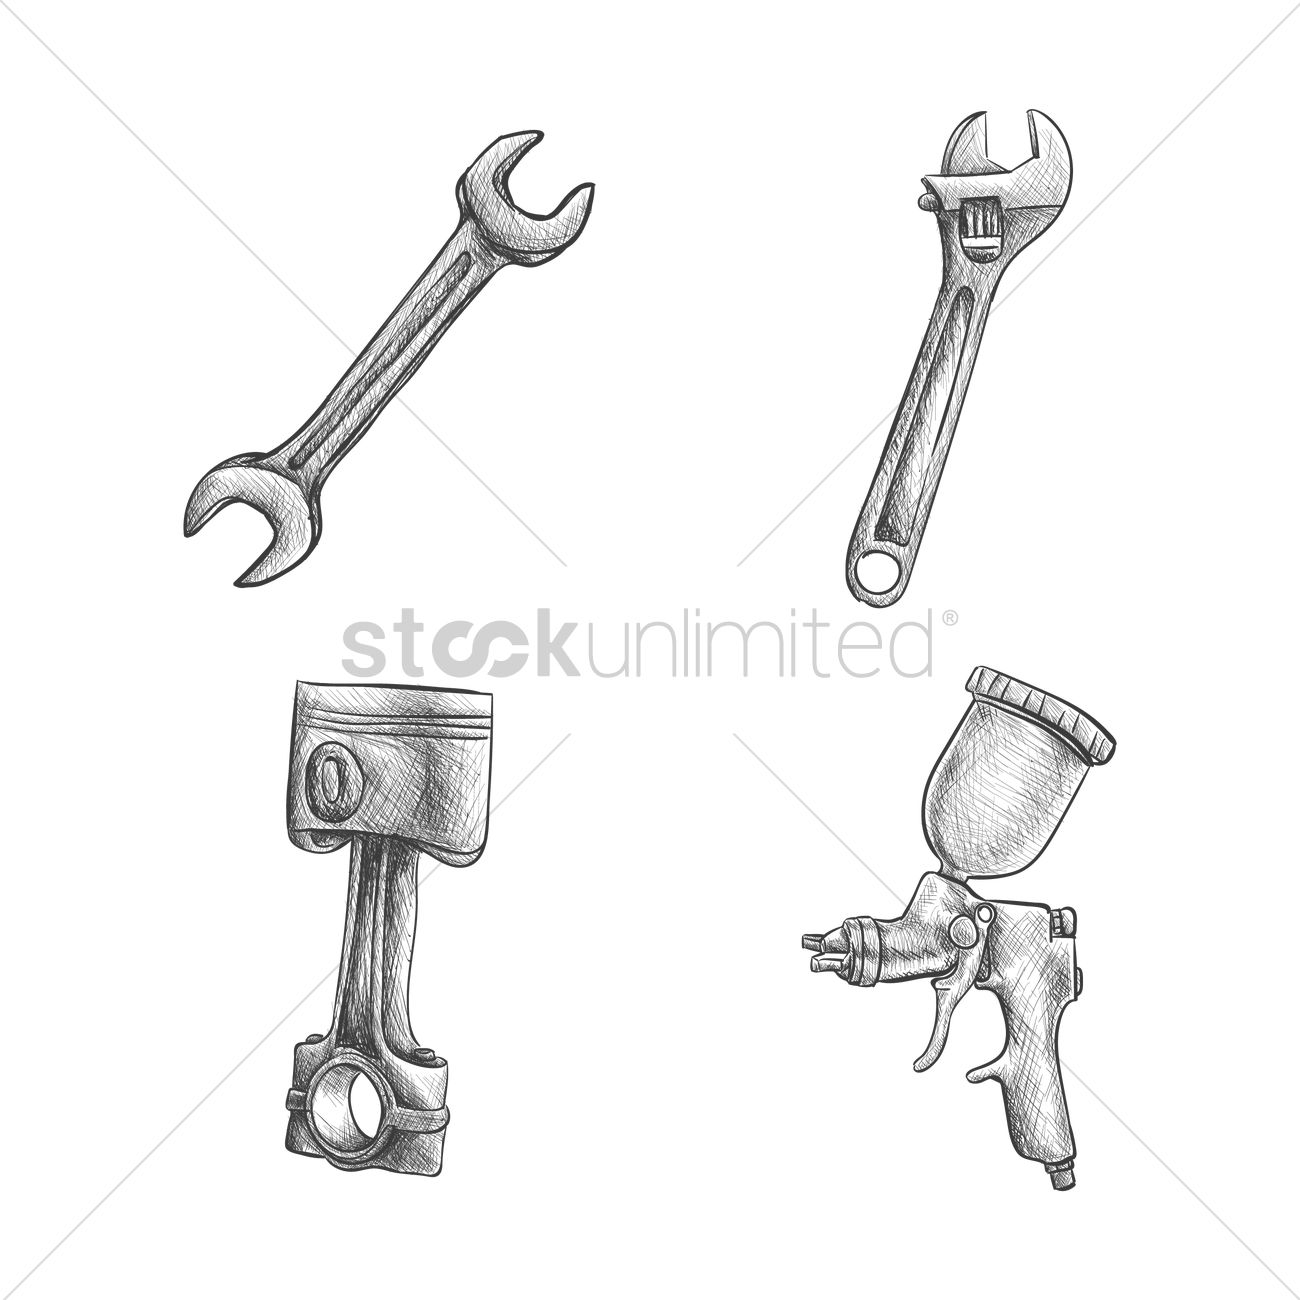 Set of car parts Vector Image - 1636026 | StockUnlimited